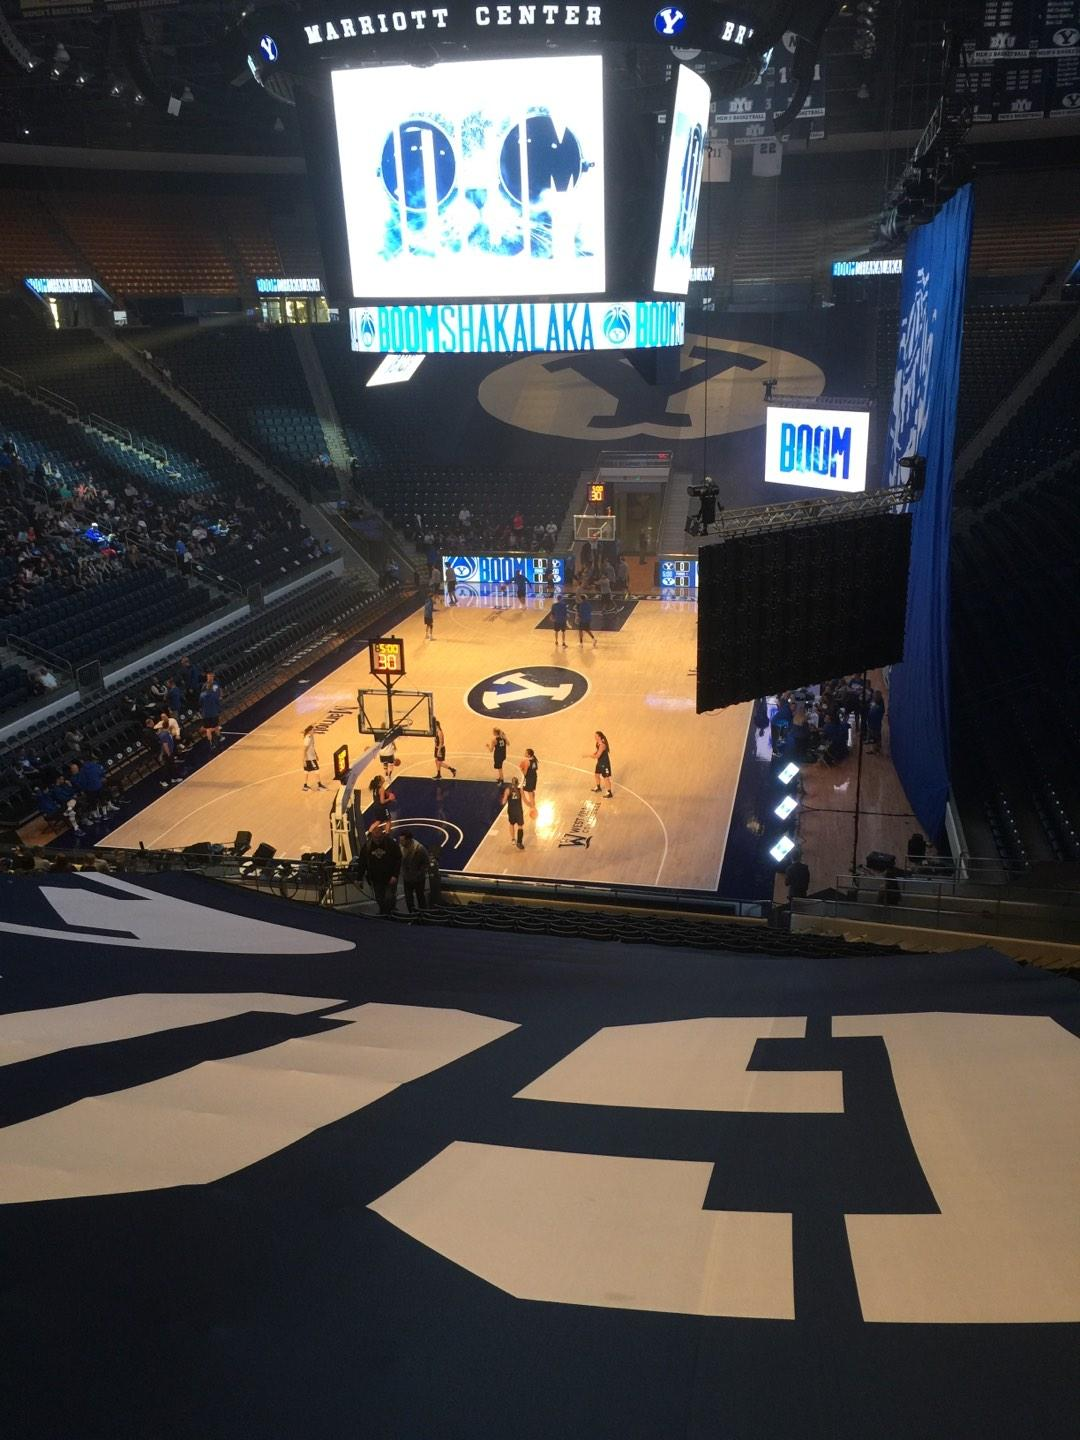 Marriott Center Section 3 Row 25 Seat 3